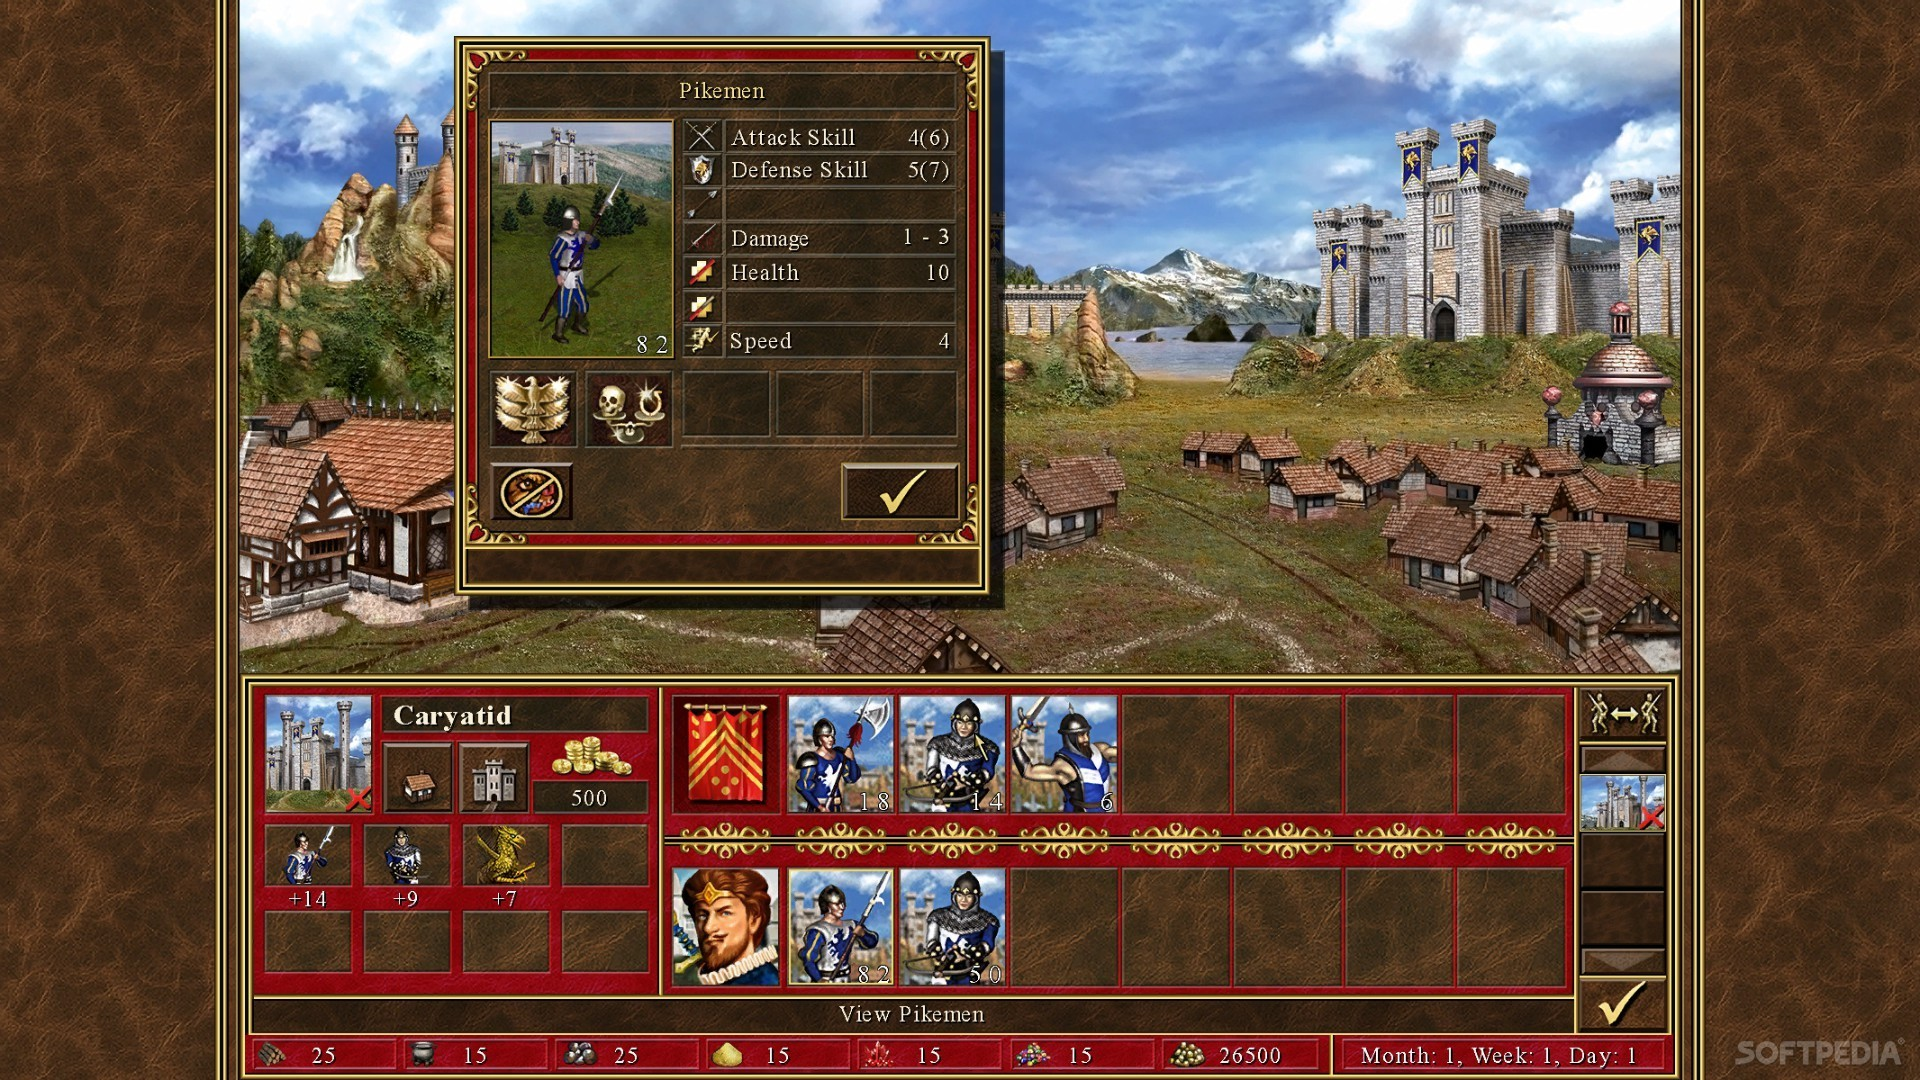 heroes of might and magic 3 hd free download